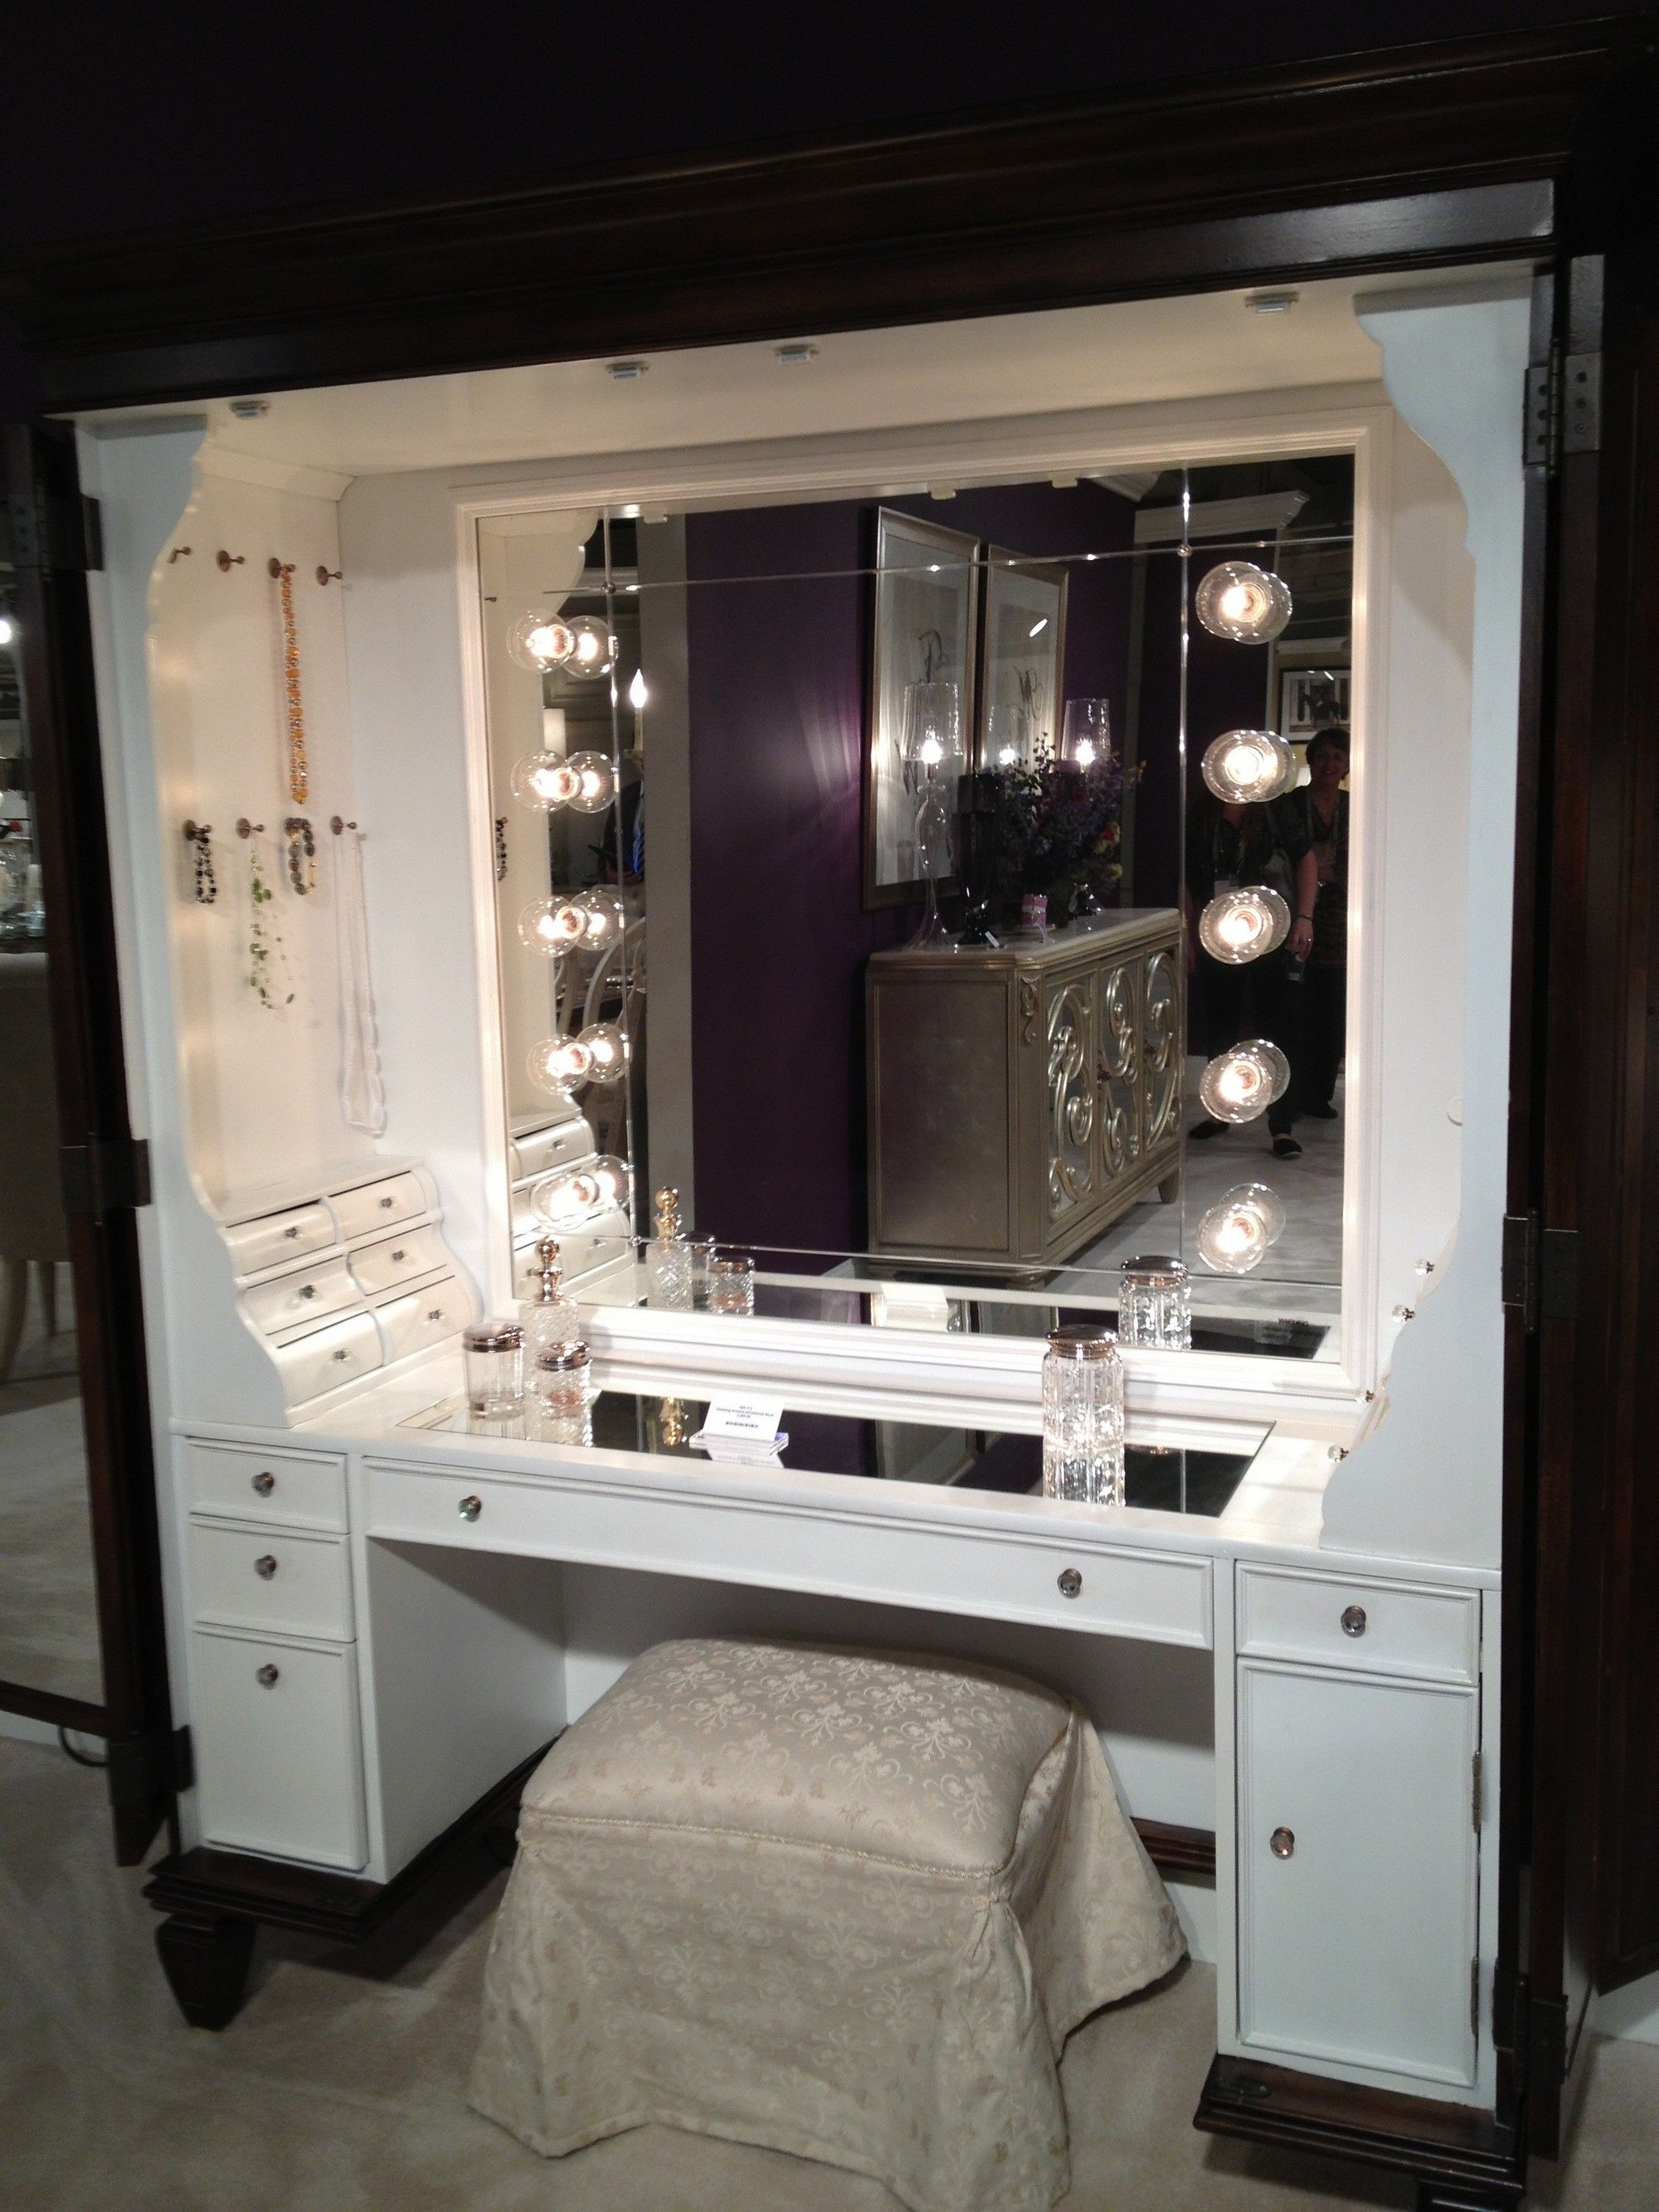 ideasprofessional snazzy aweinspiring professional case in vanities withlights modelprofessional lighting lights india lightsfurniture for table gh desk inspirations box makeup along vanity with image painting sophisticated